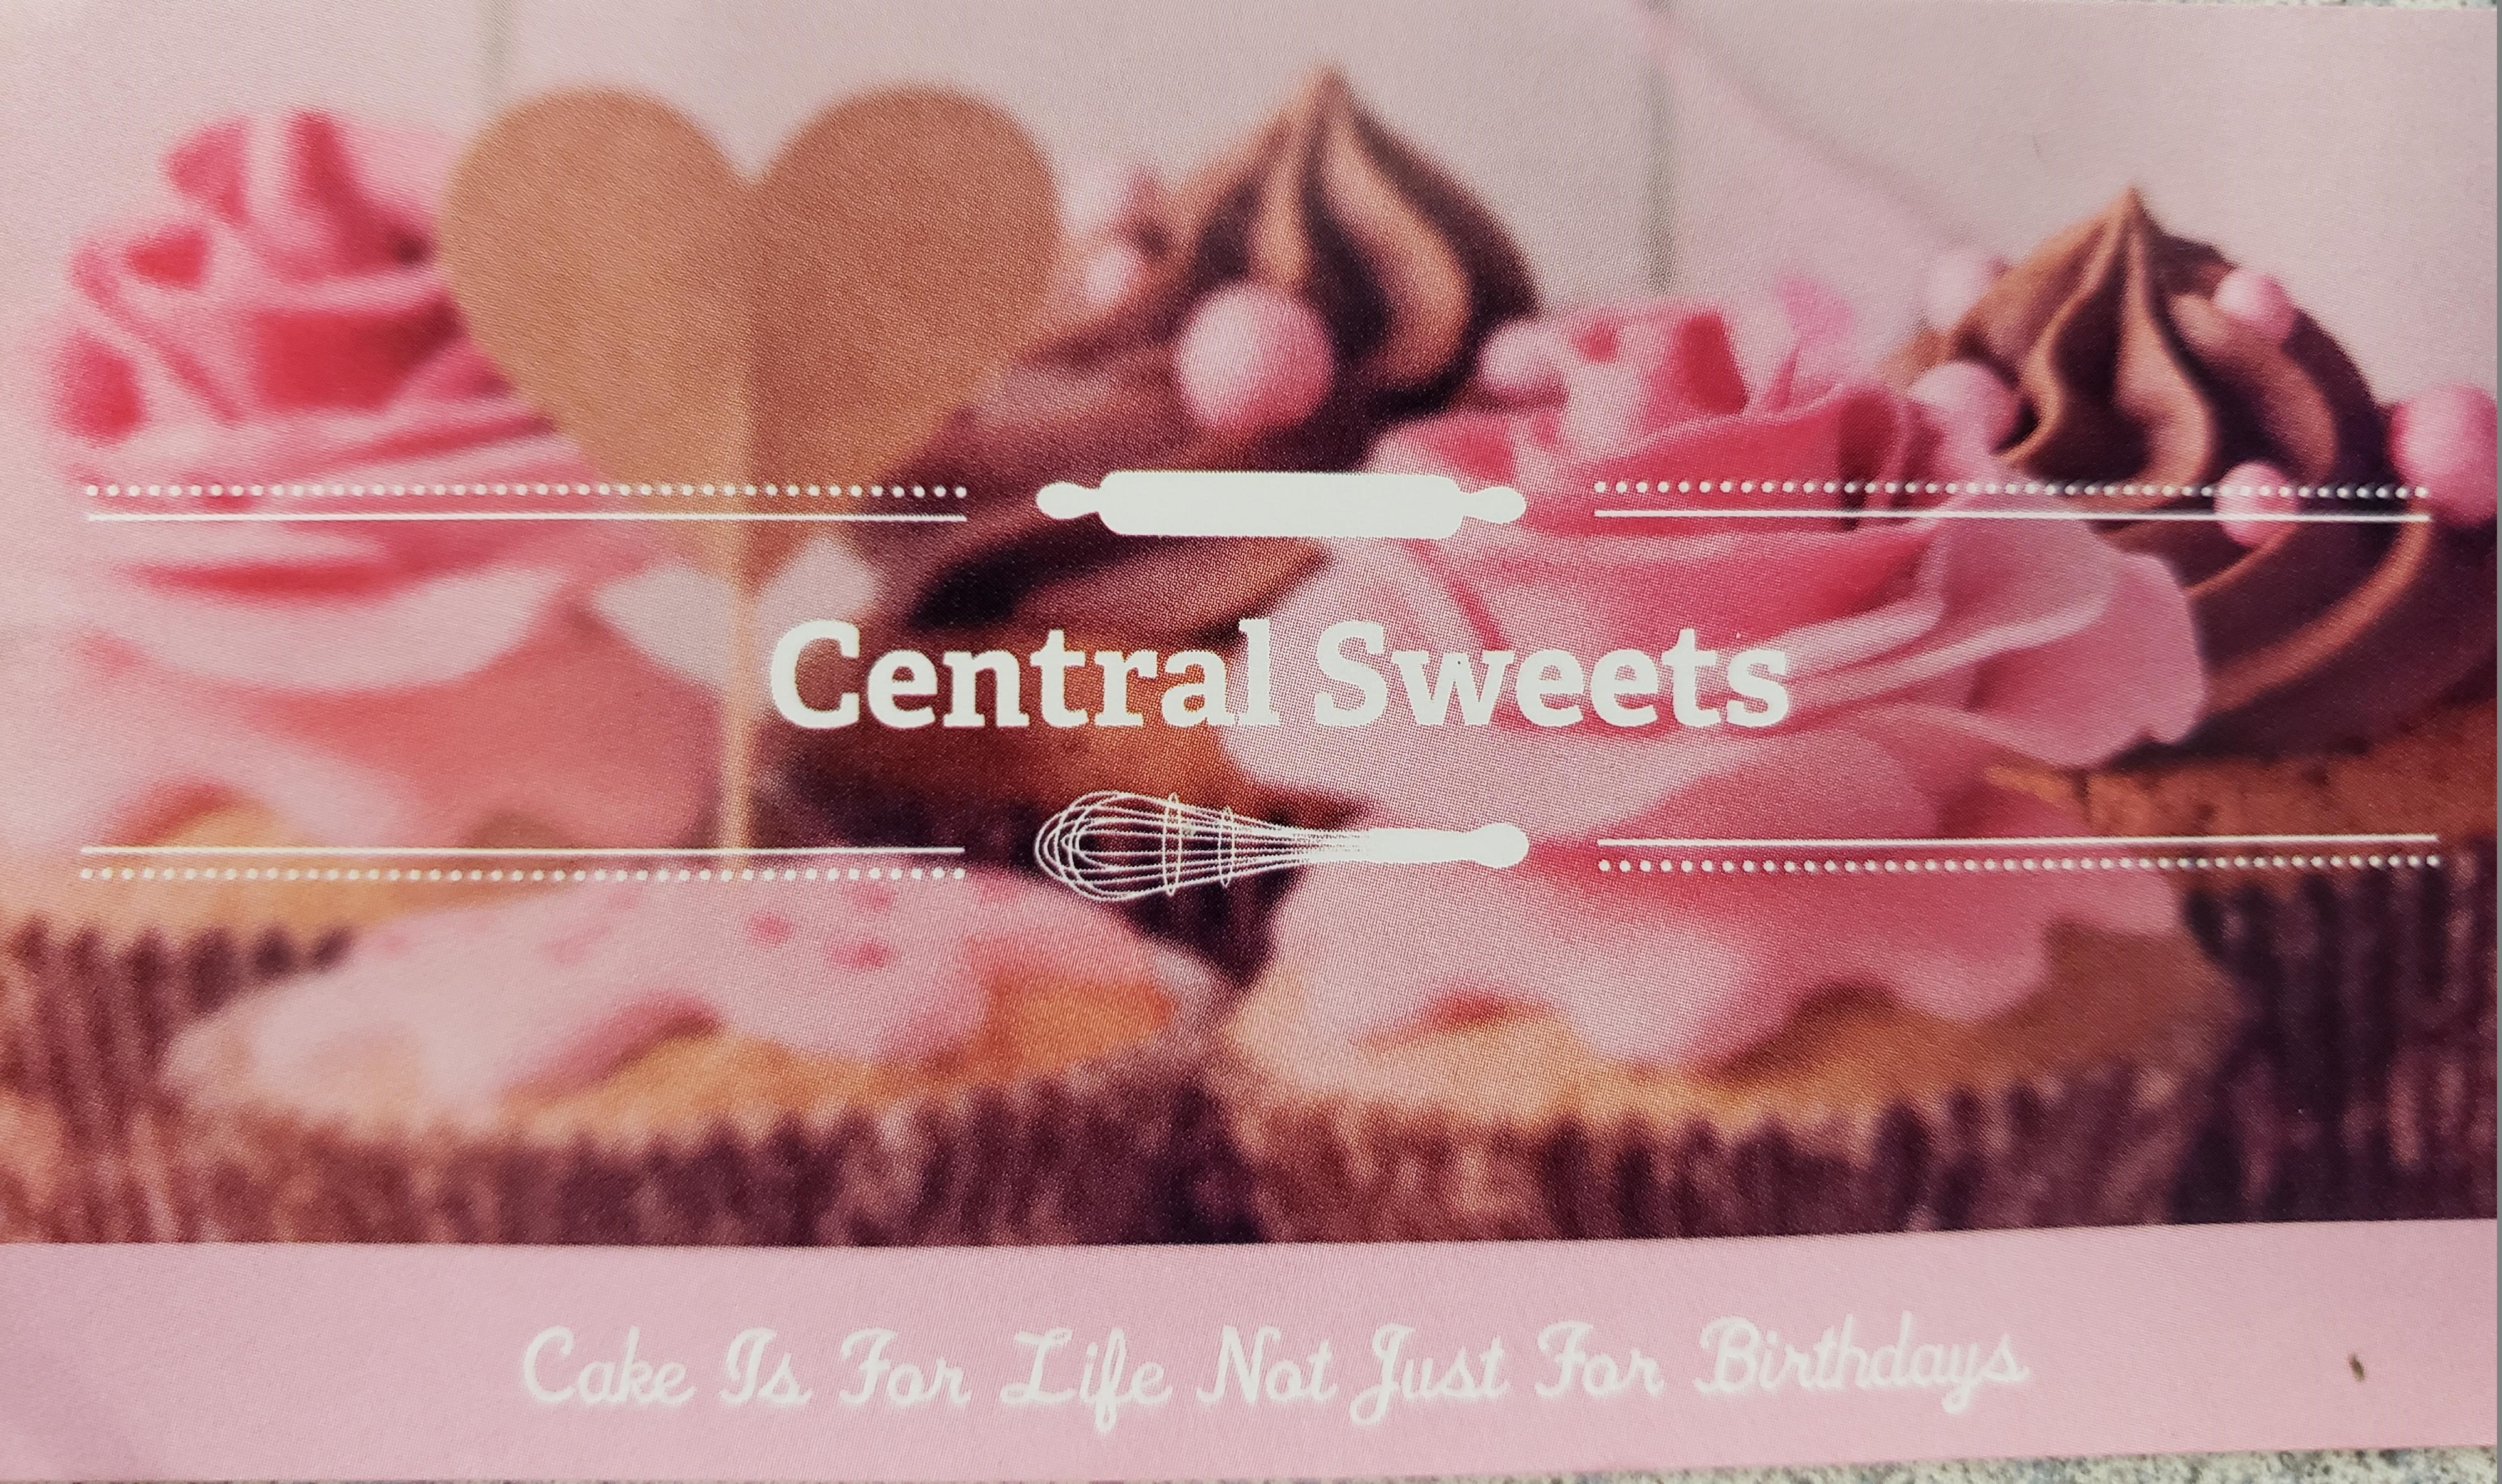 Central Sweets